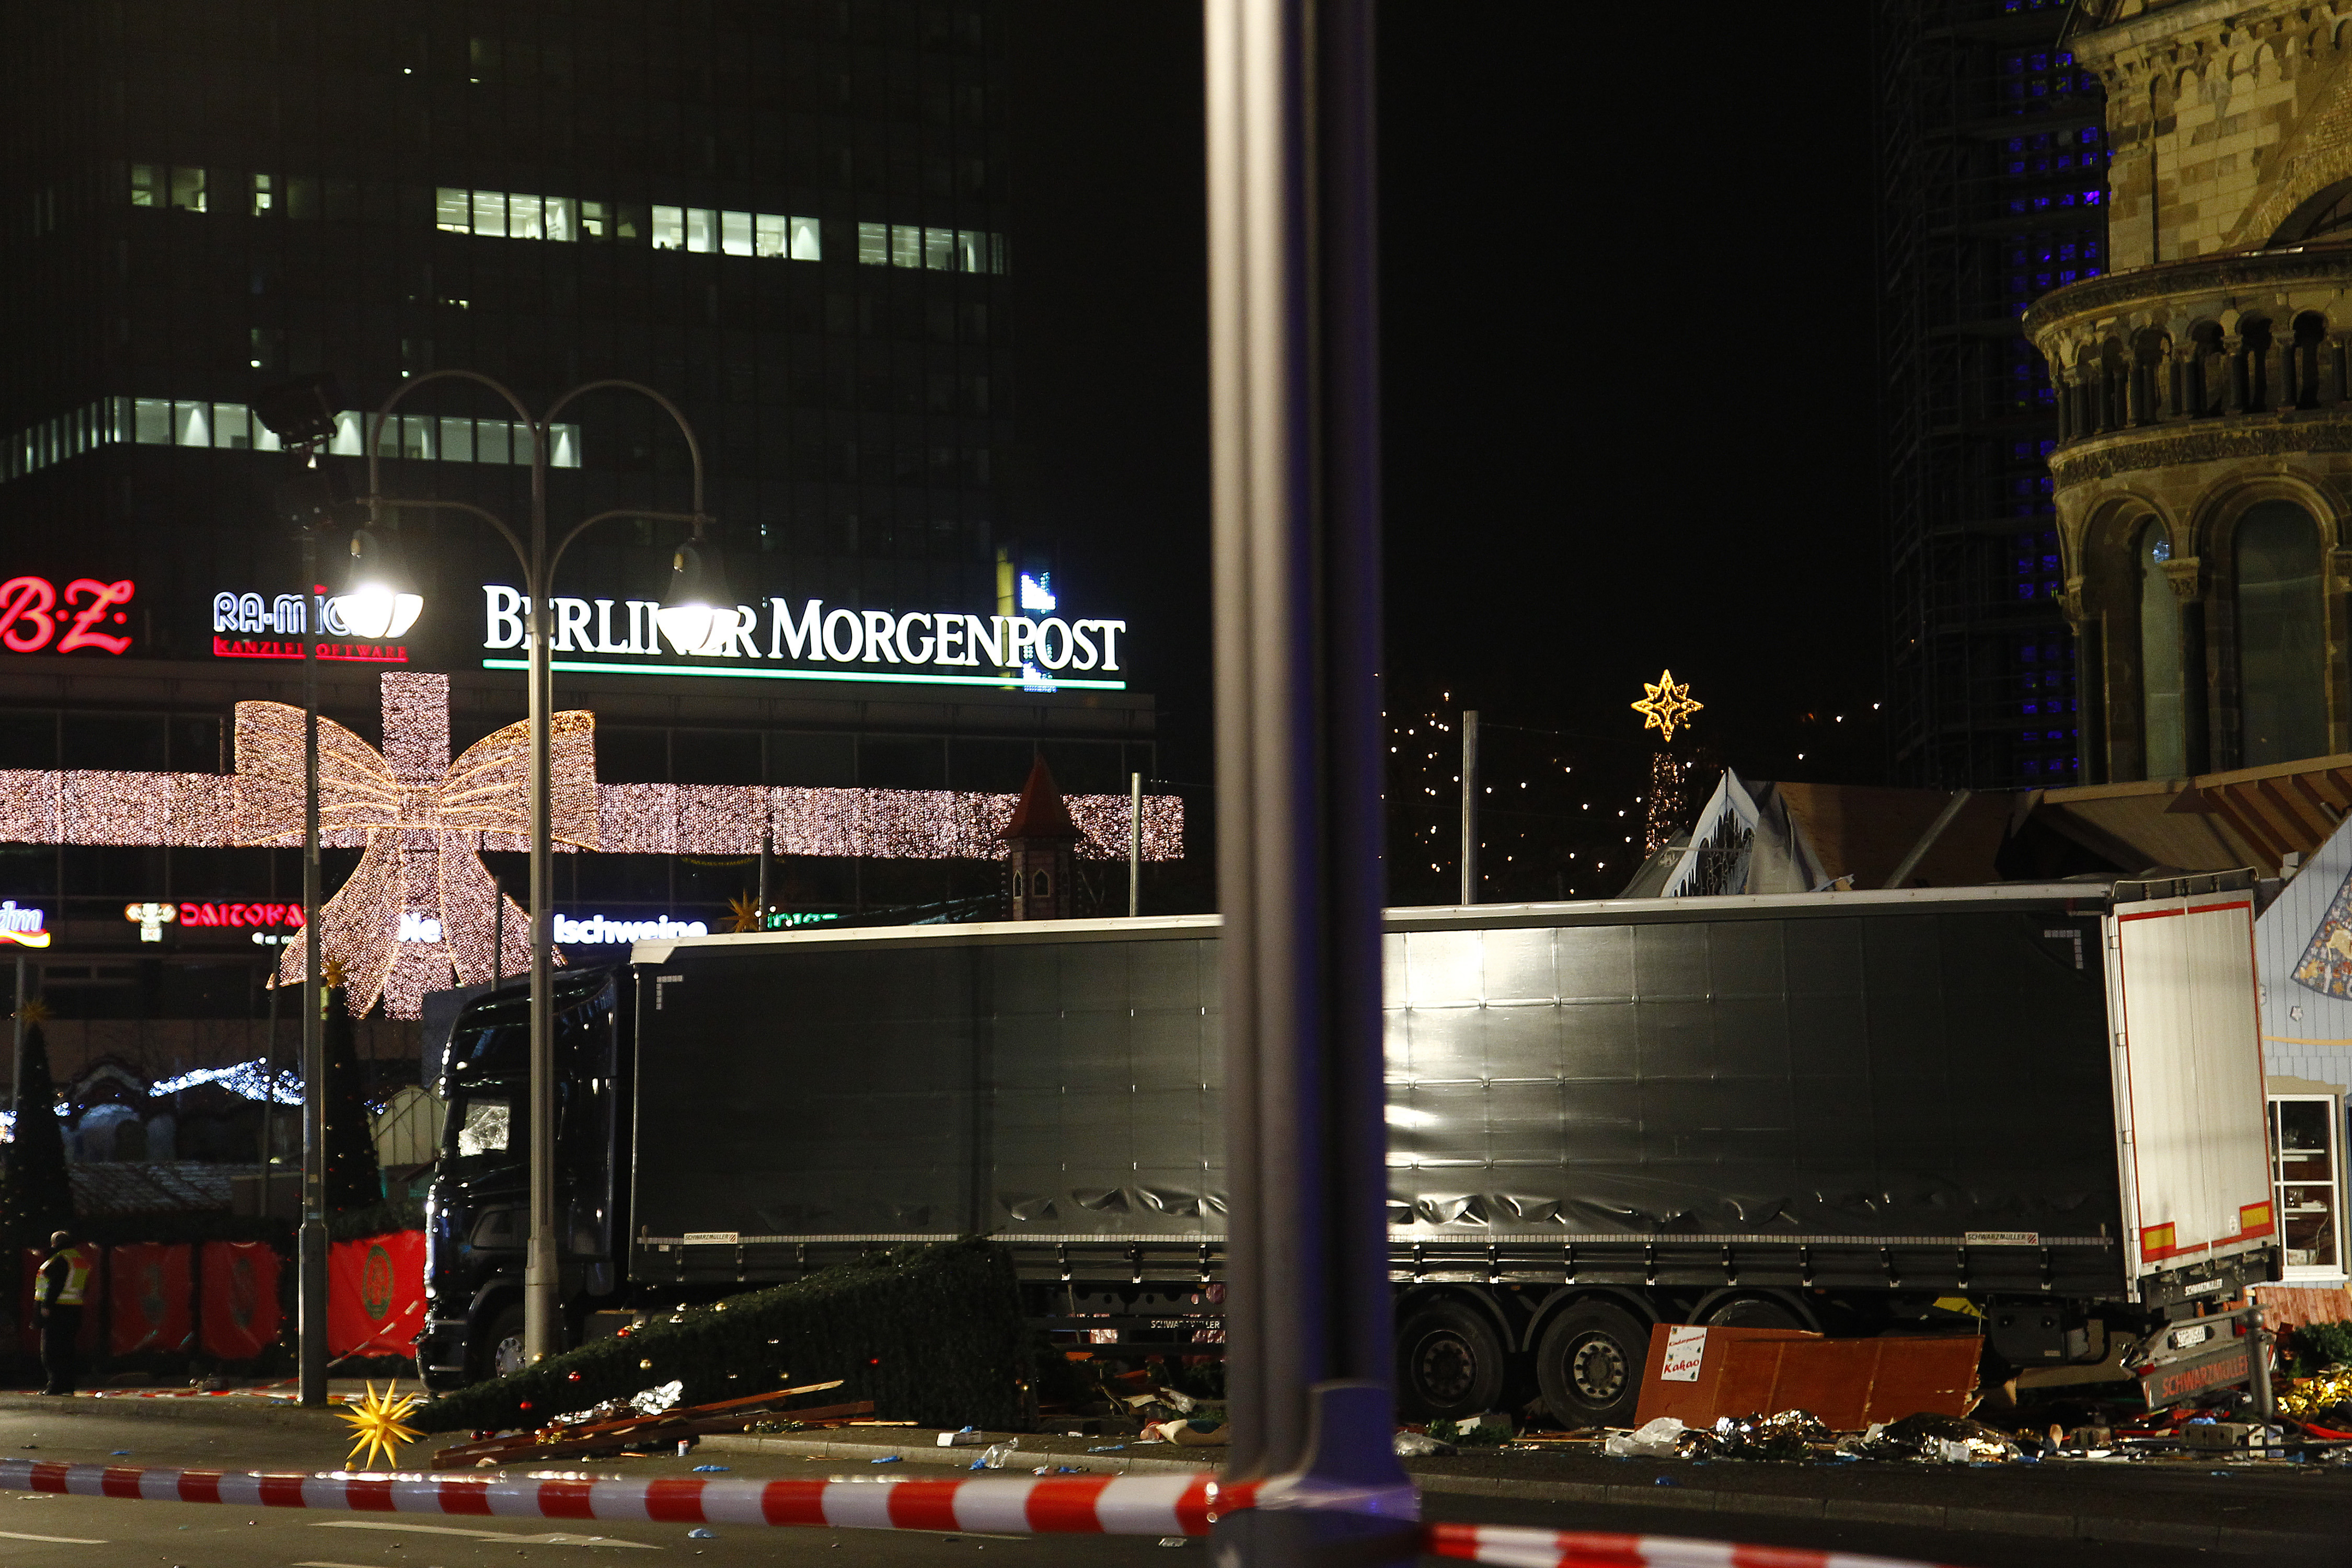 Security and rescue workers tend to the area after a truck plowed through a Christmas market on Dec. 19, 2016 in Berlin, Germany, killing at least nine and injuring many more. (Getty Images)